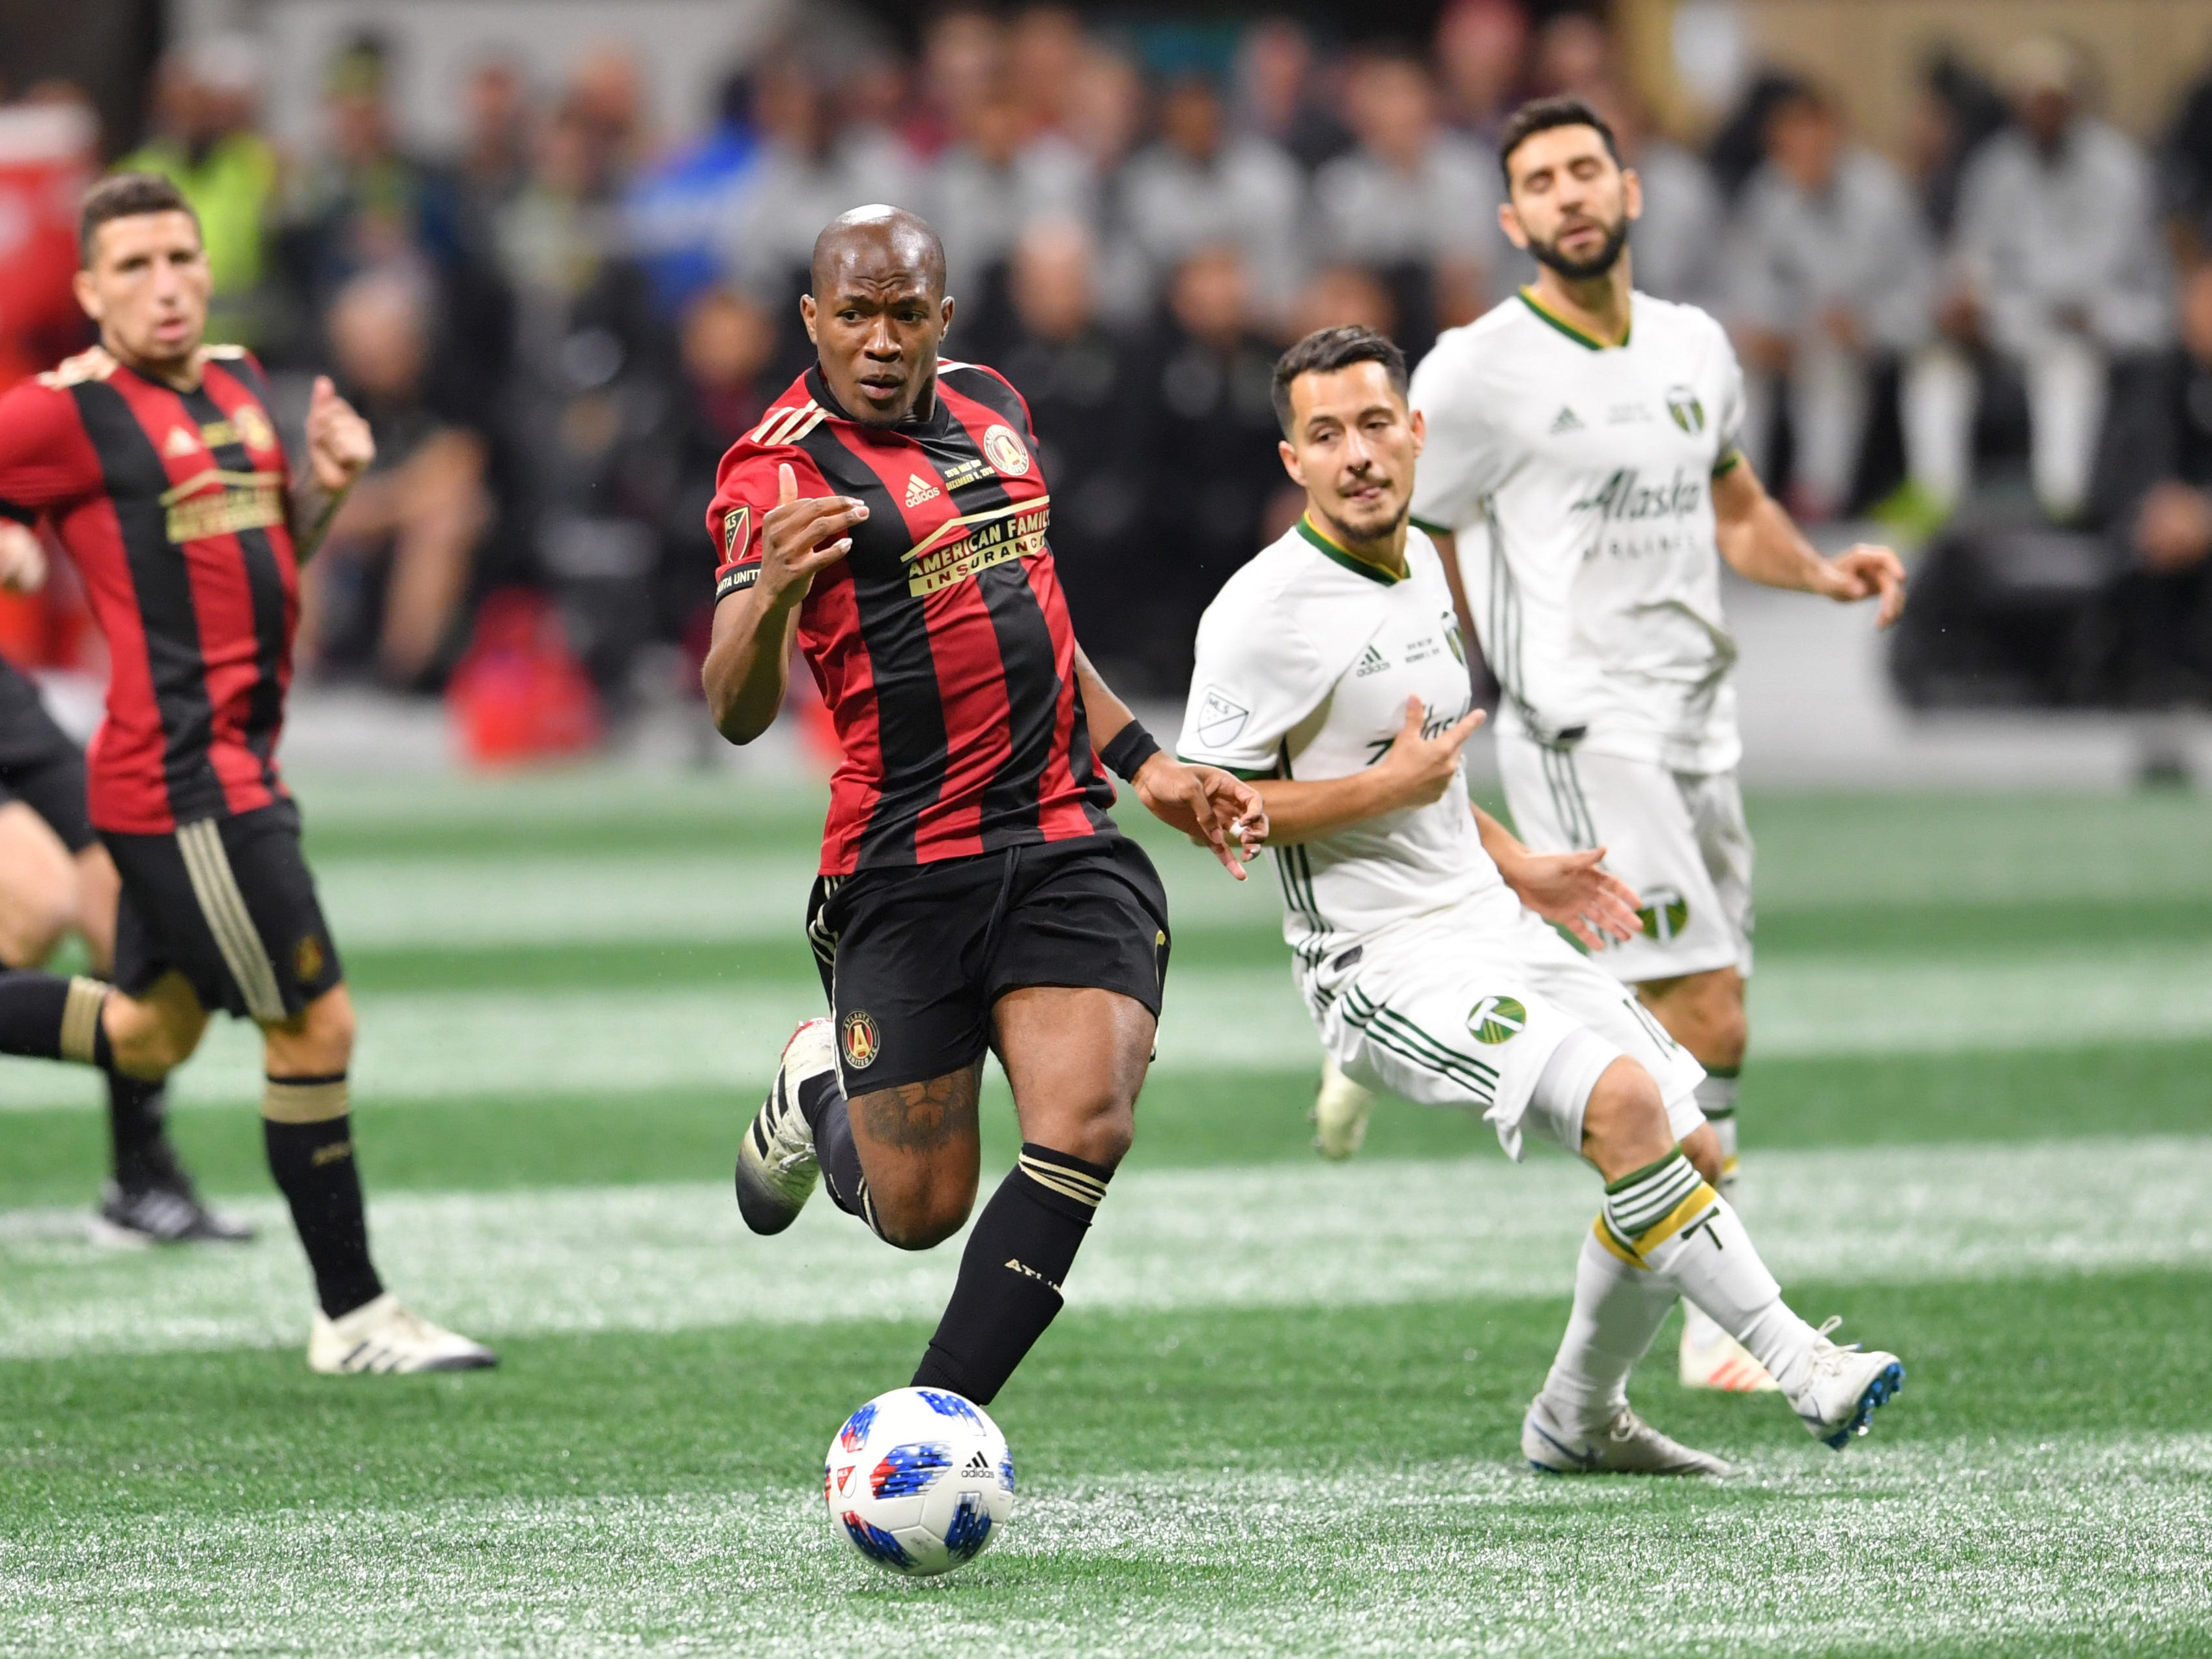 Atlanta United midfielder Darlington Nagbe, left, gathers the ball during the first half of the 2018 MLS Cup championship game against the Portland Timbers.